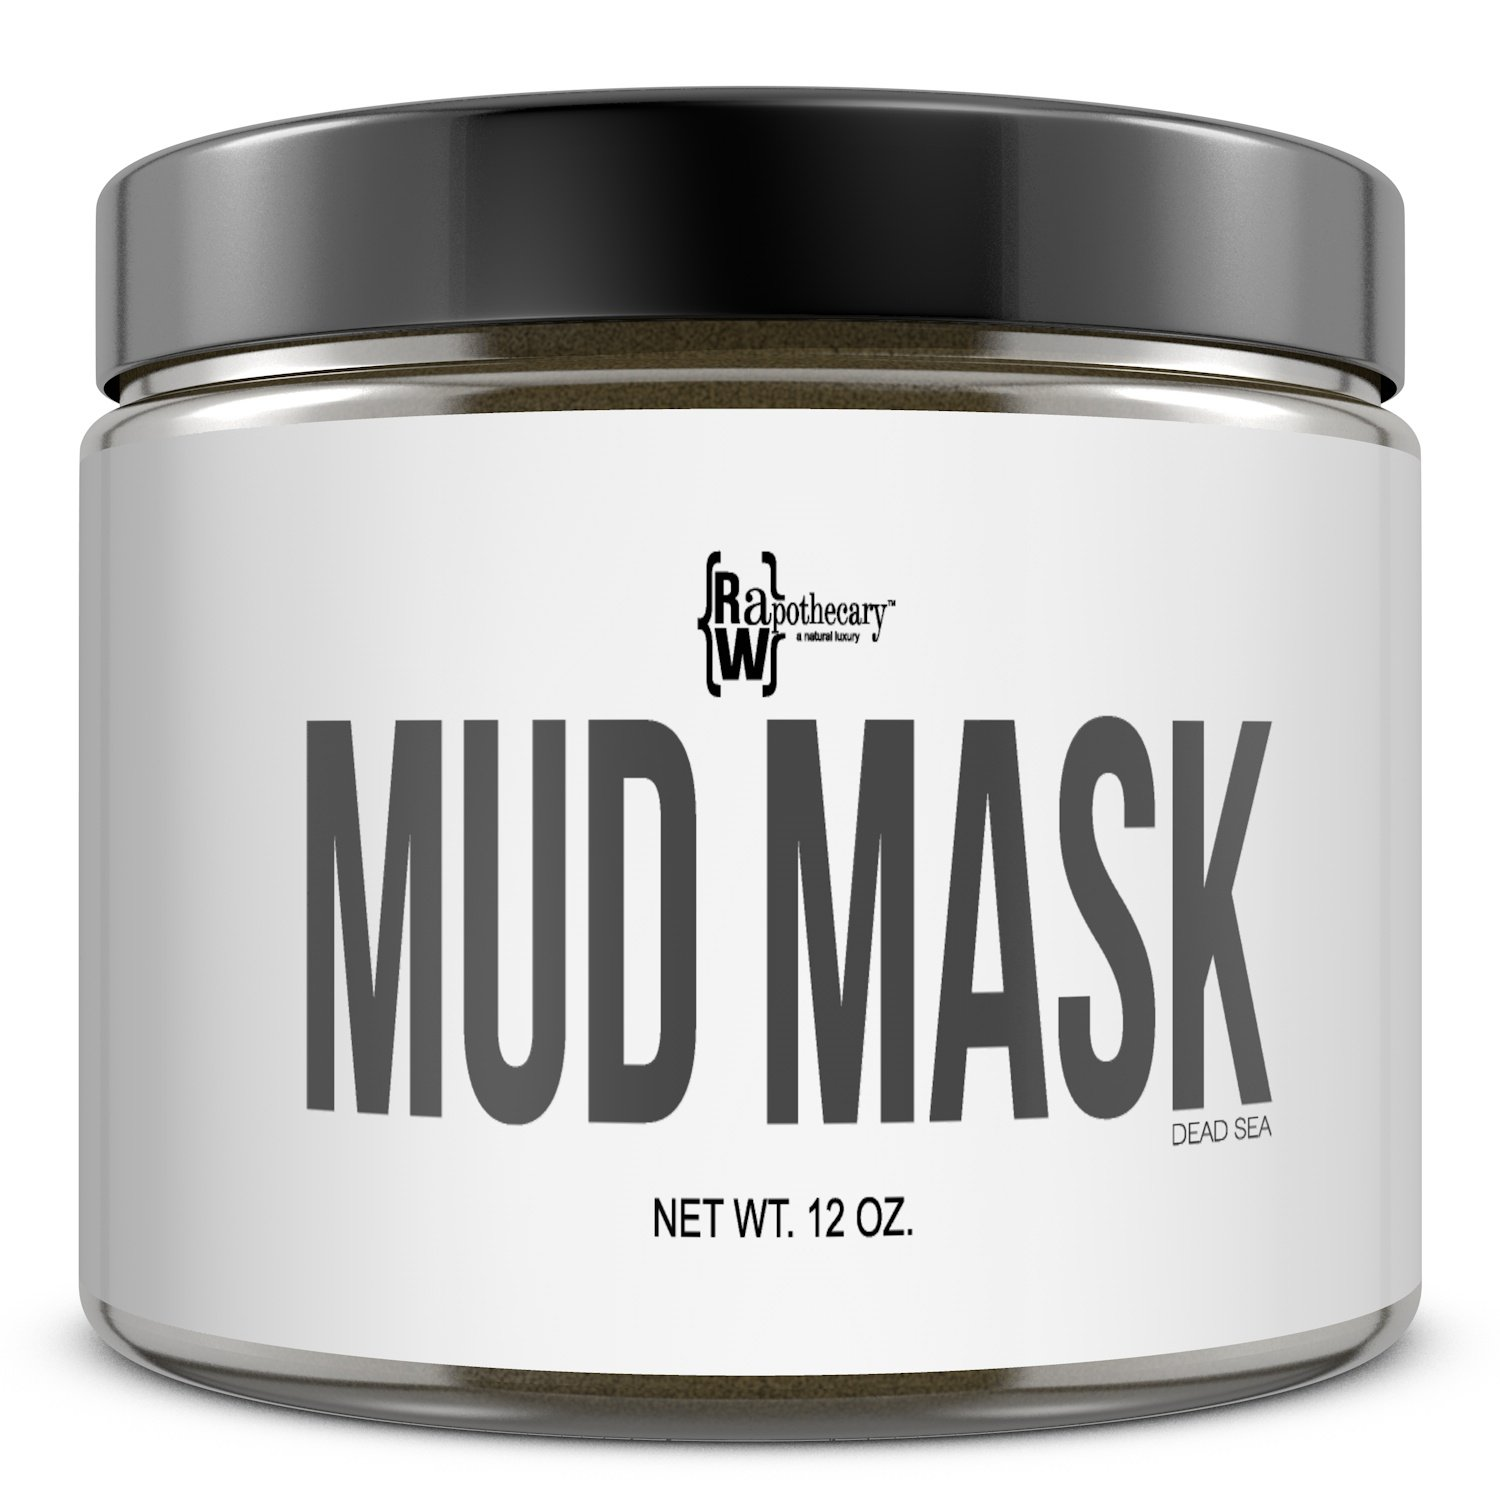 Dead Sea Mud Mask by Raw Apothecary- All Natural Facial & Skin Treatment, Treats Acne, Reduces Wrinkles, Eliminates Cellulite (12 Ounces)